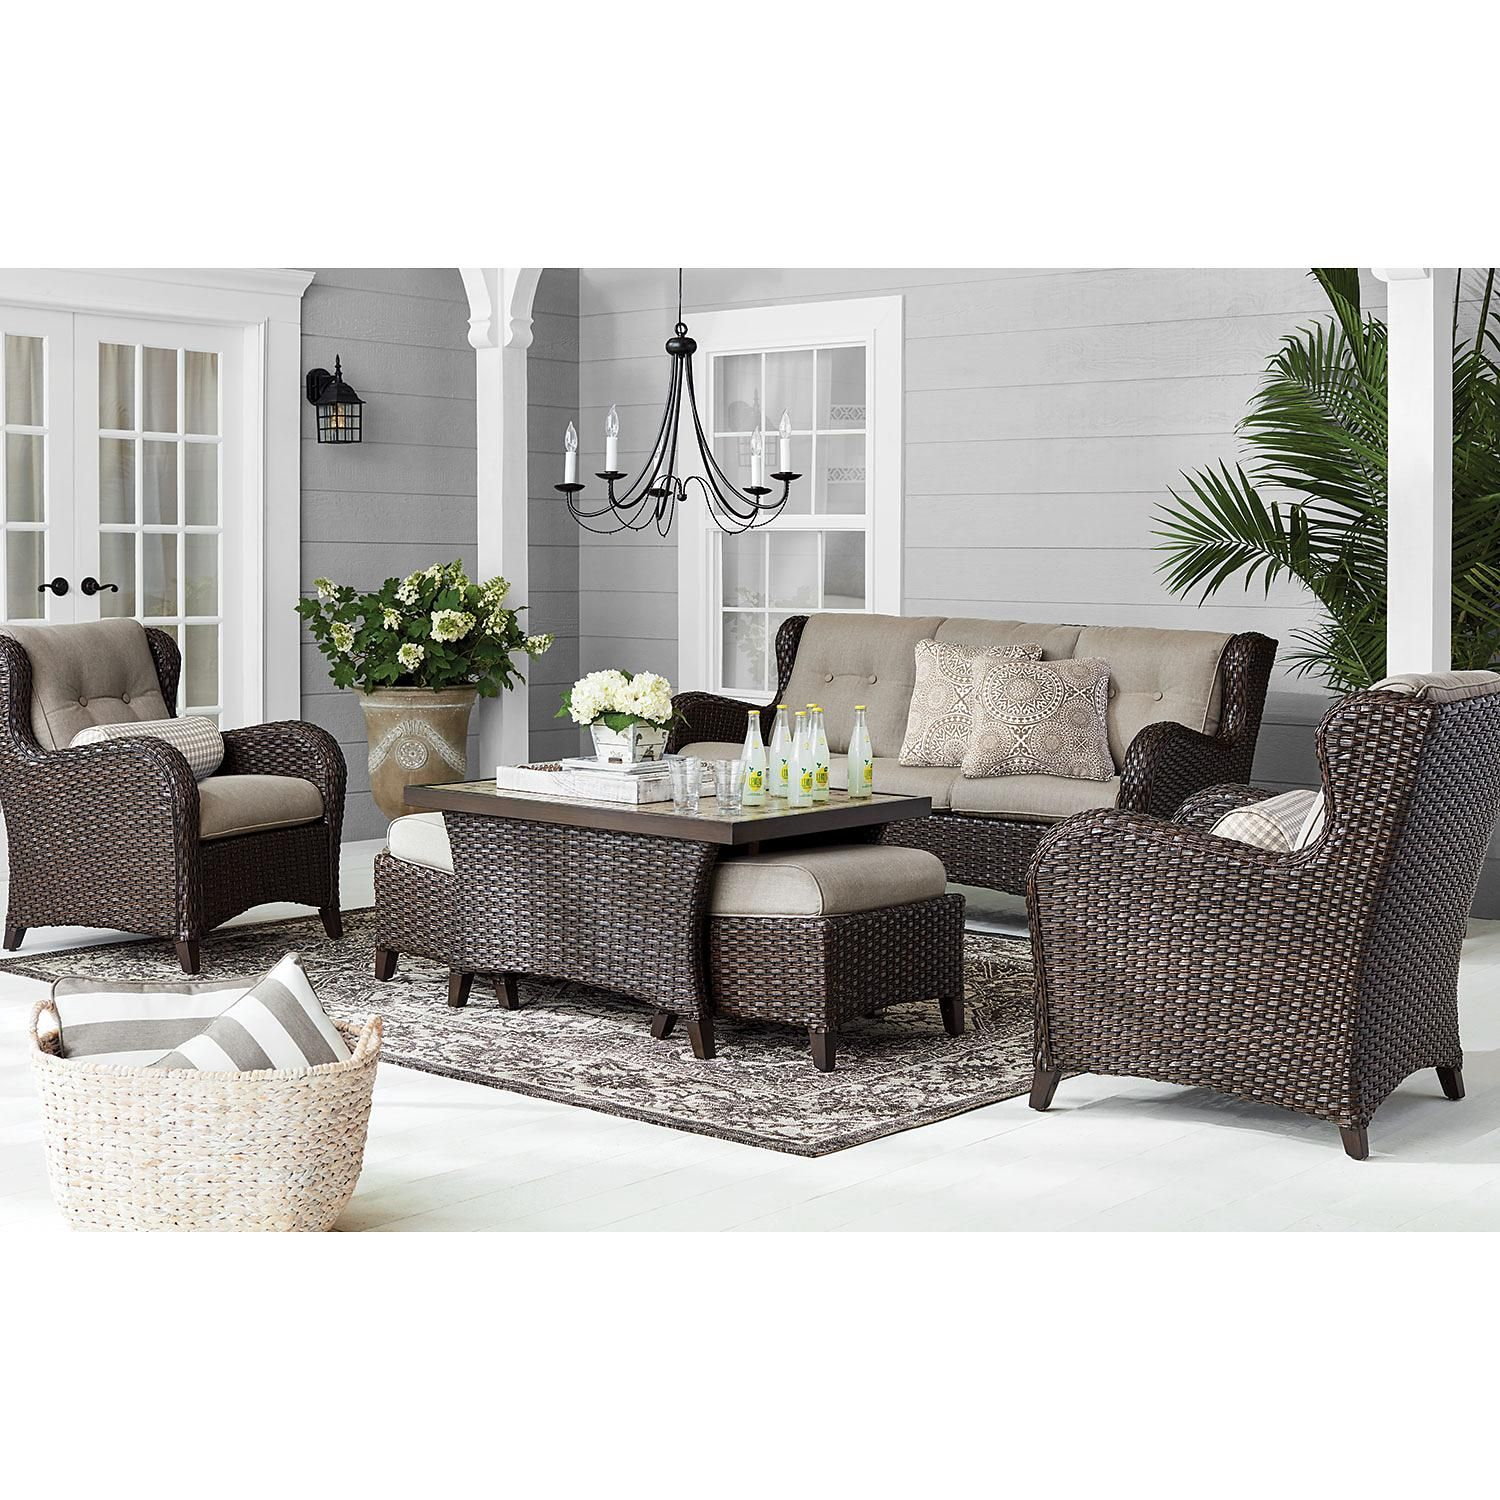 Member's Mark Agio Heritage 6Piece Deep Seating Set with